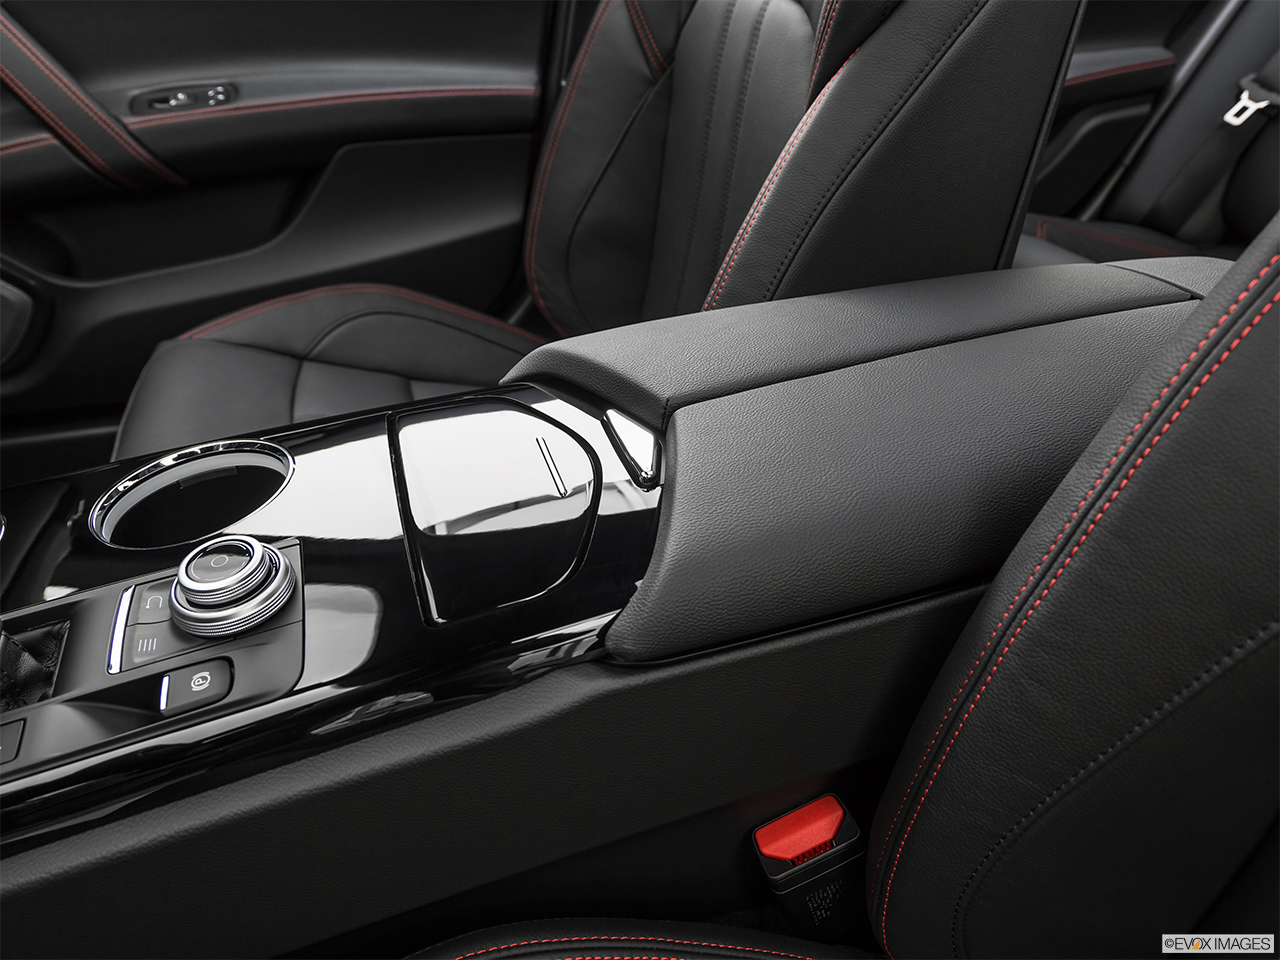 2020 Maserati Ghibli S Gransport Front center console with closed lid, from driver's side looking down